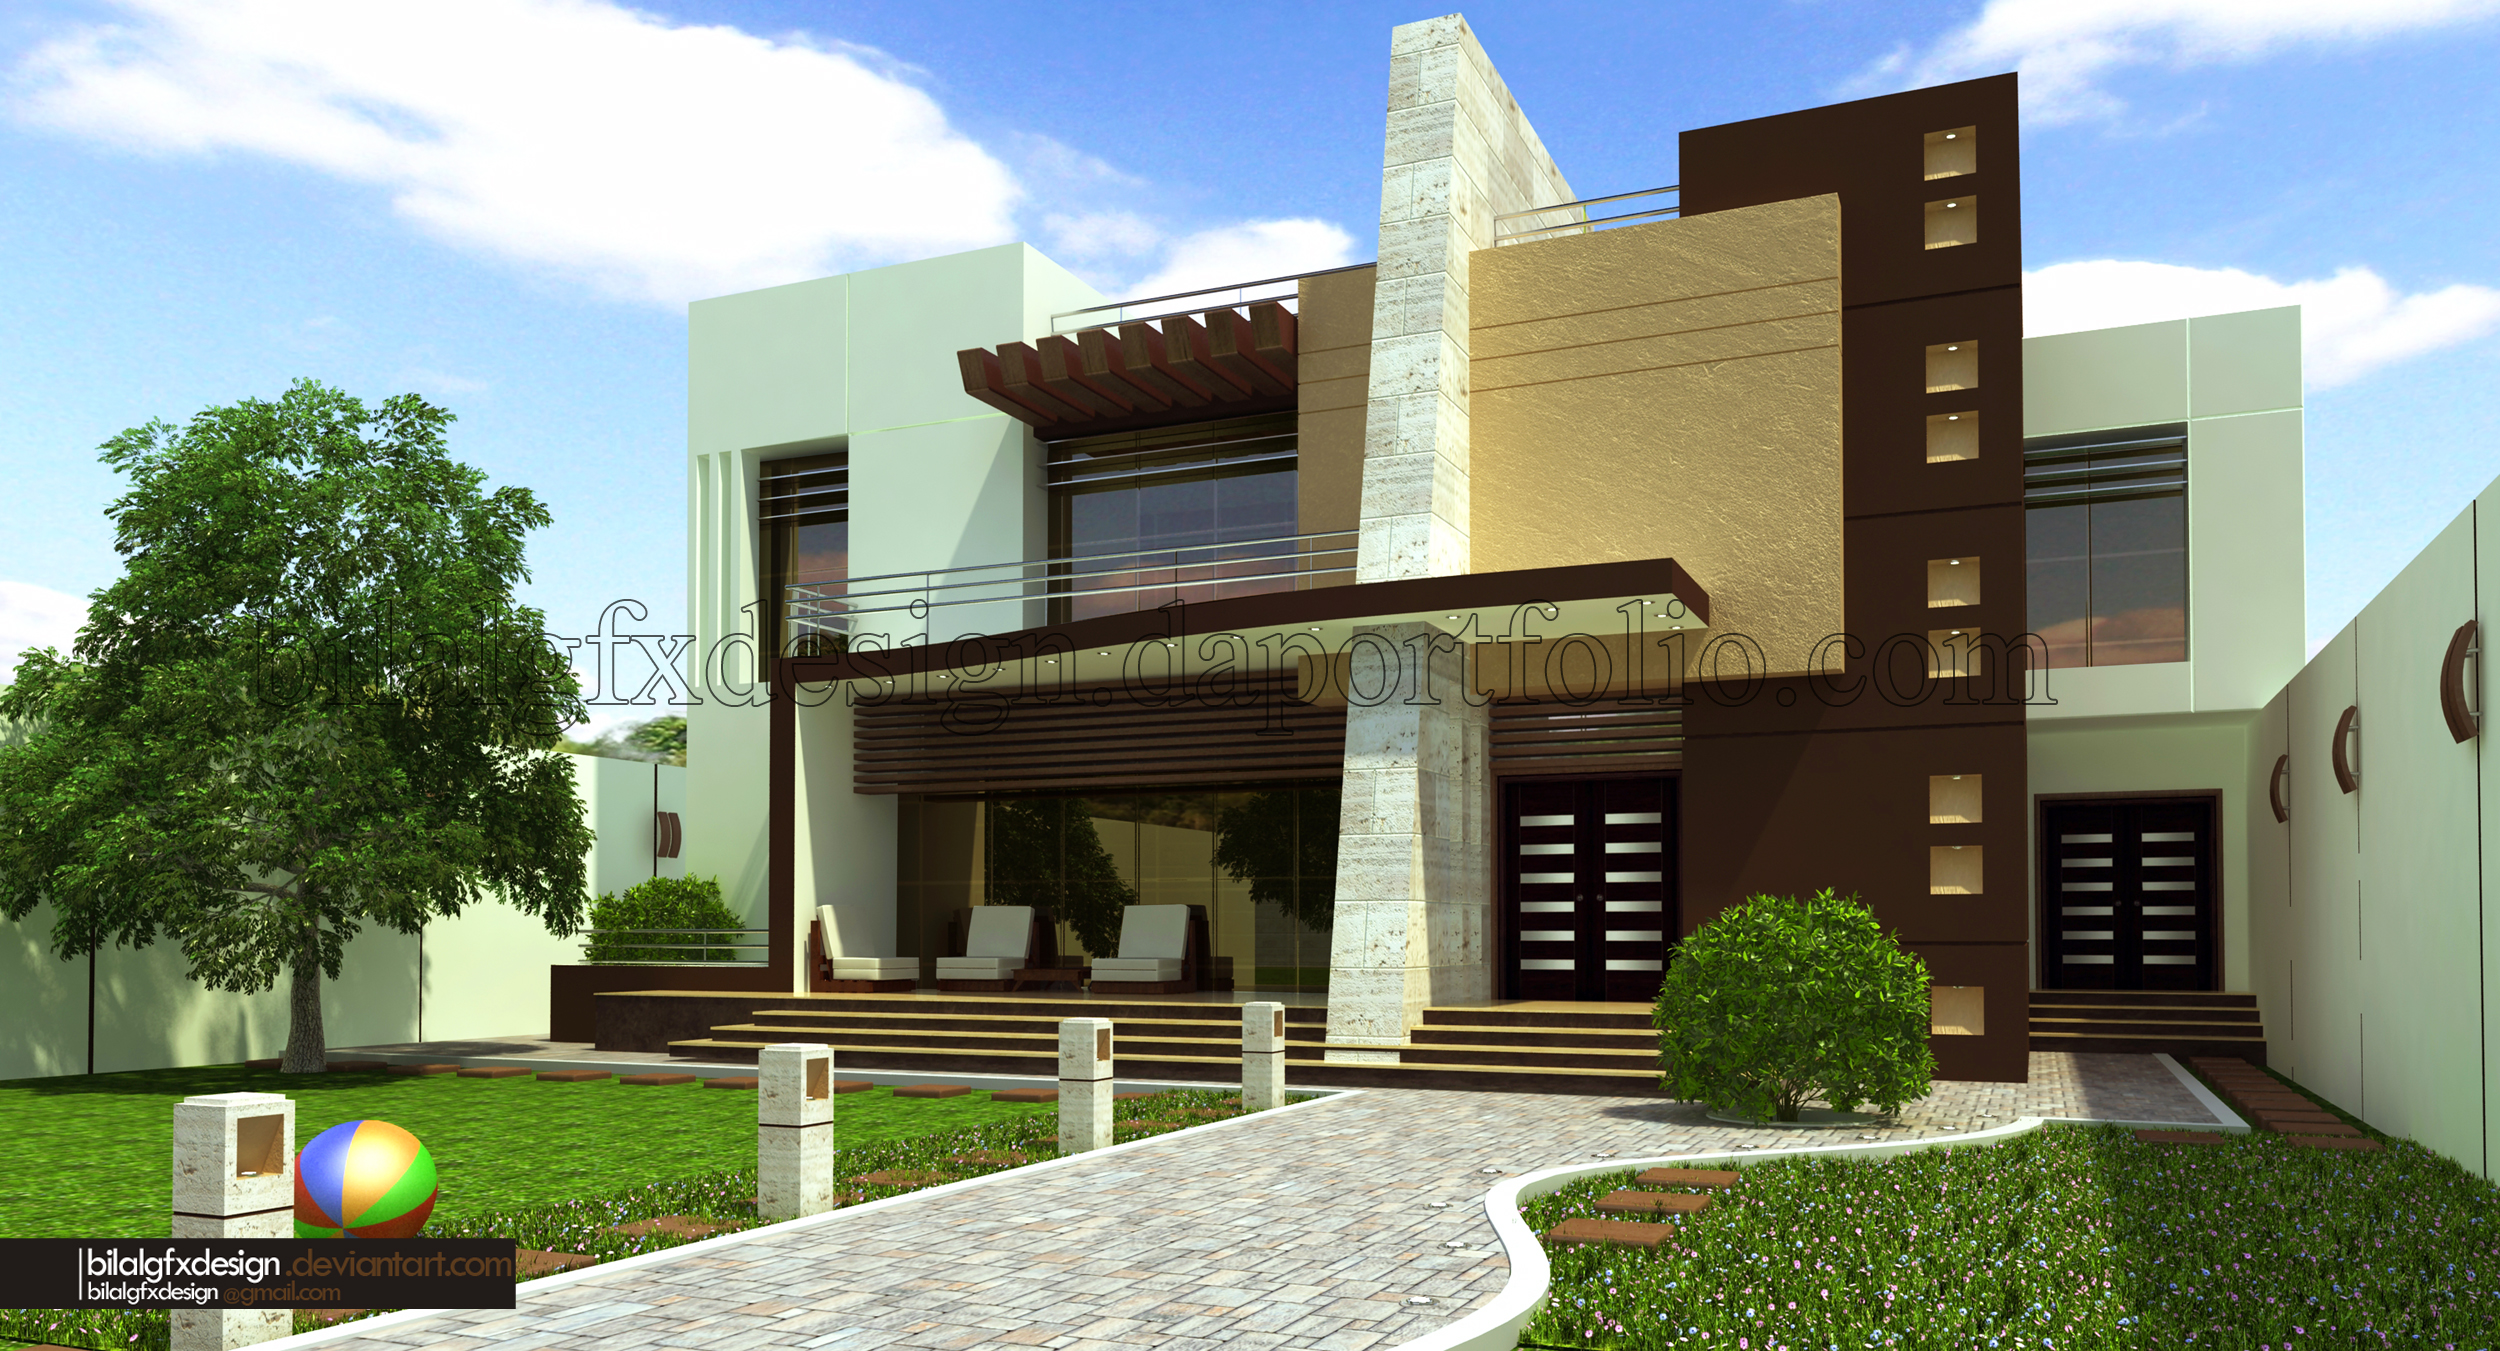 Modern villa 1 by bilalgfxdesign on deviantart for Design villa moderne